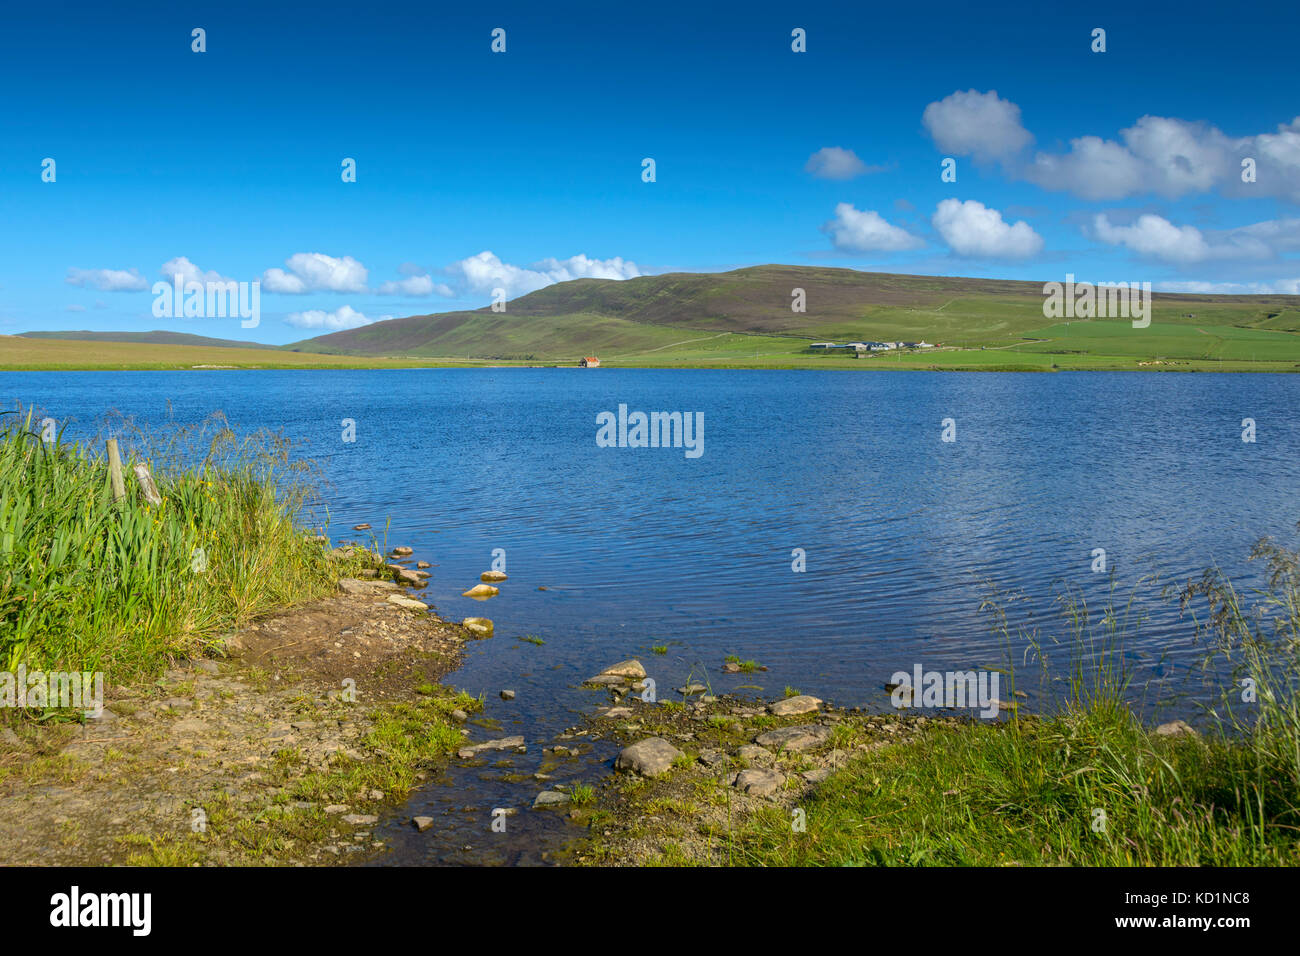 Kierfea Hill over the Loch of Wasbister, Rousay, Orkney Islands, Scotland, UK. - Stock Image